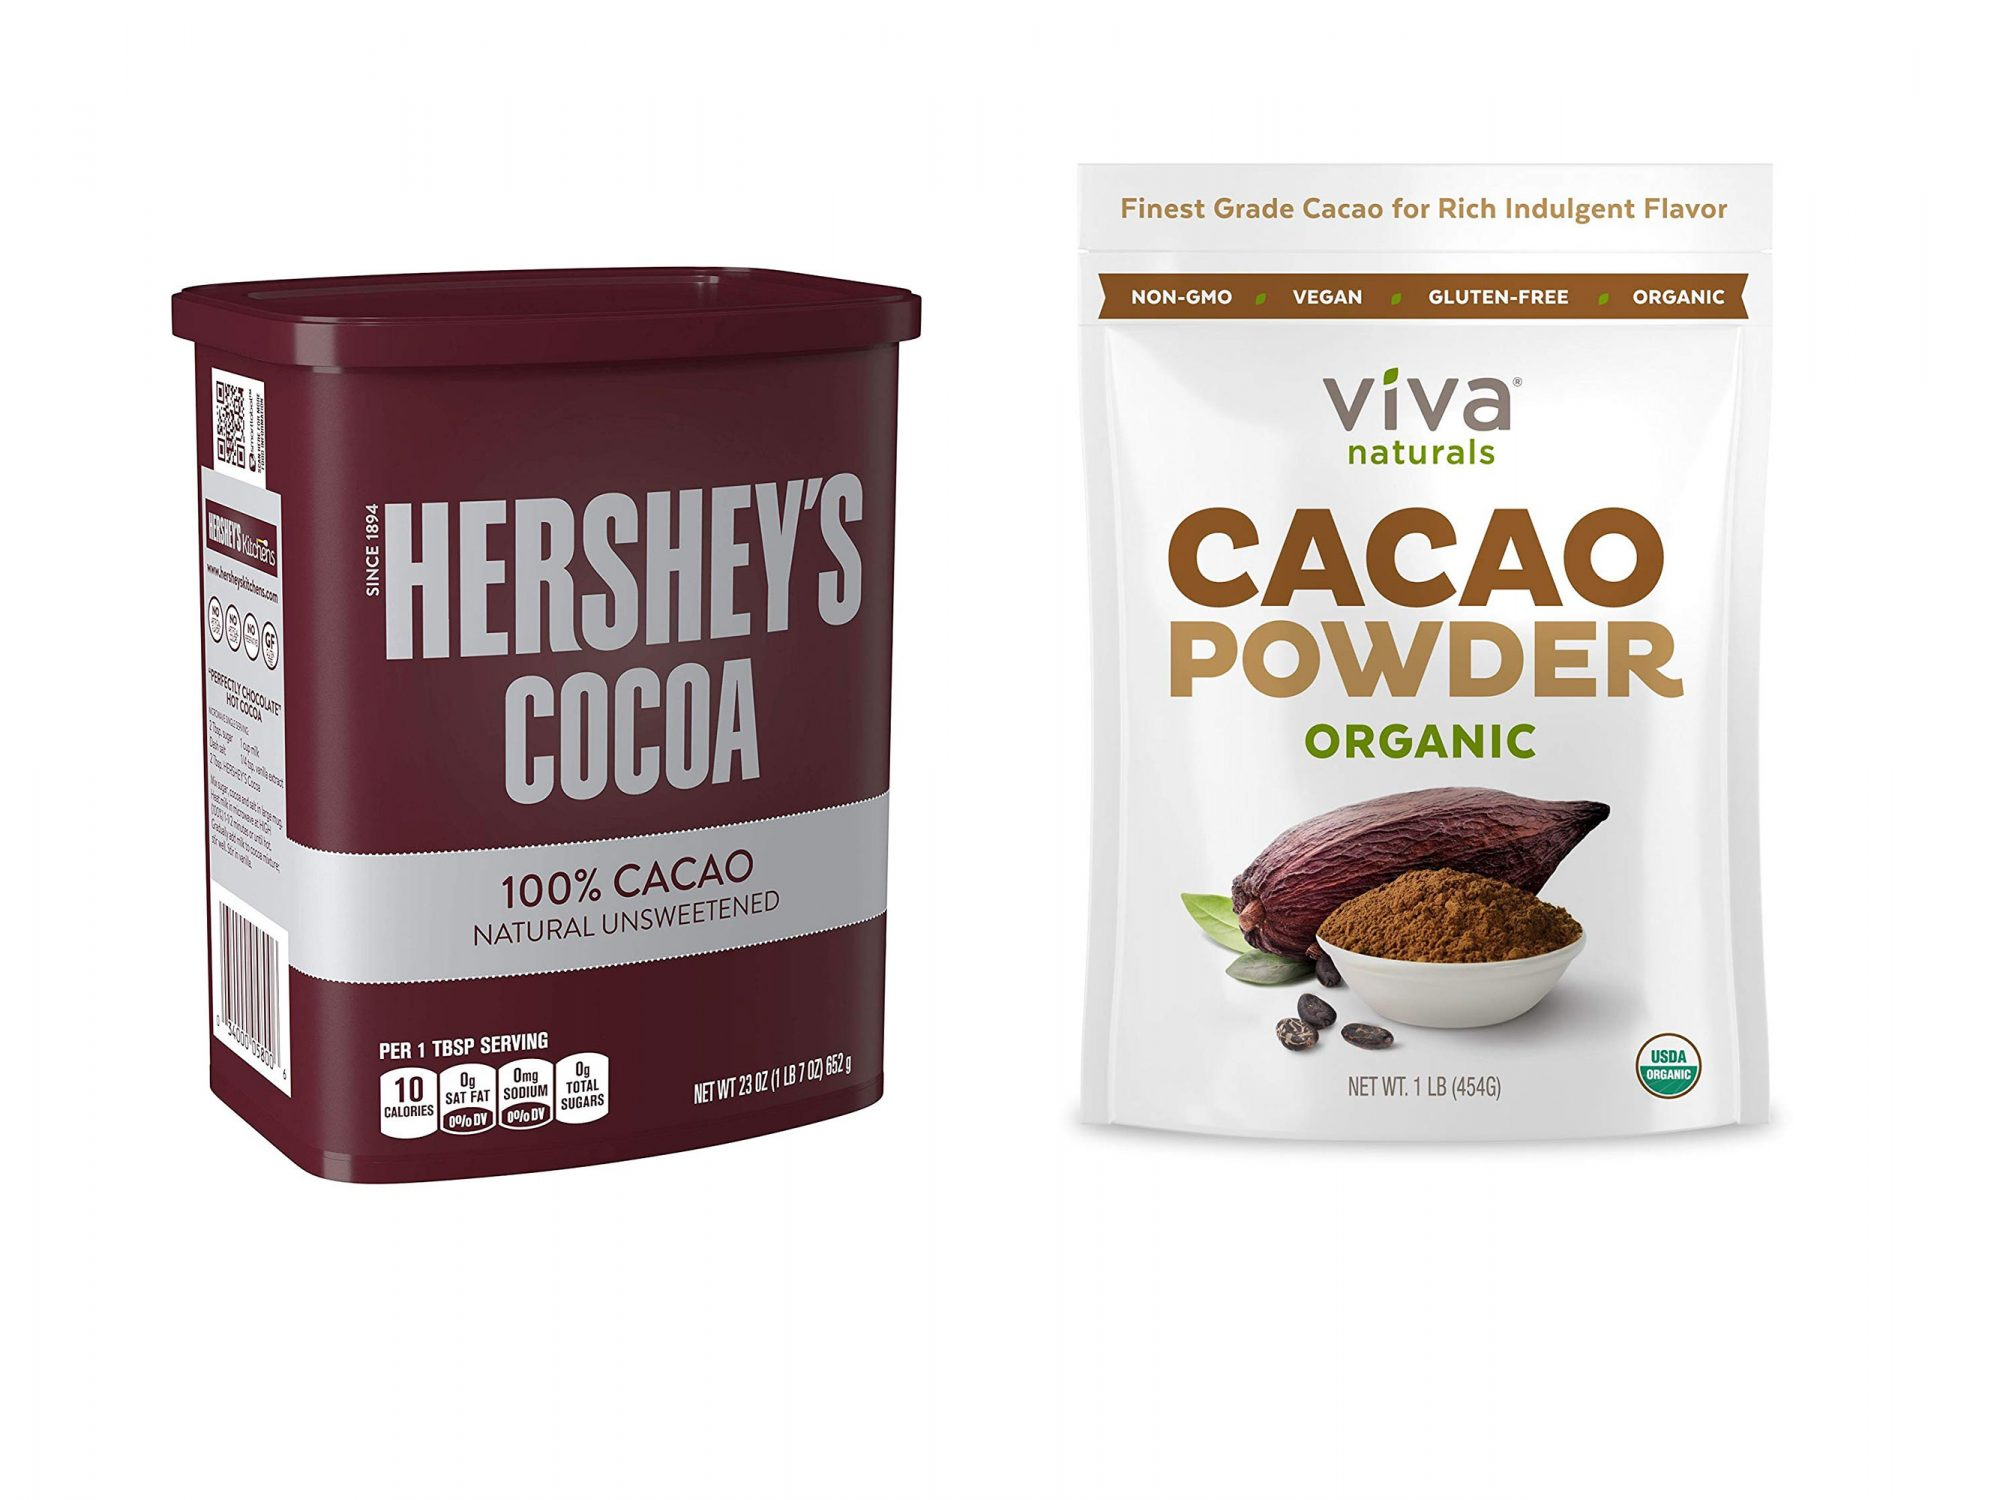 Hershey's Cocoa Powder and Viva Naturals Cacao Powder